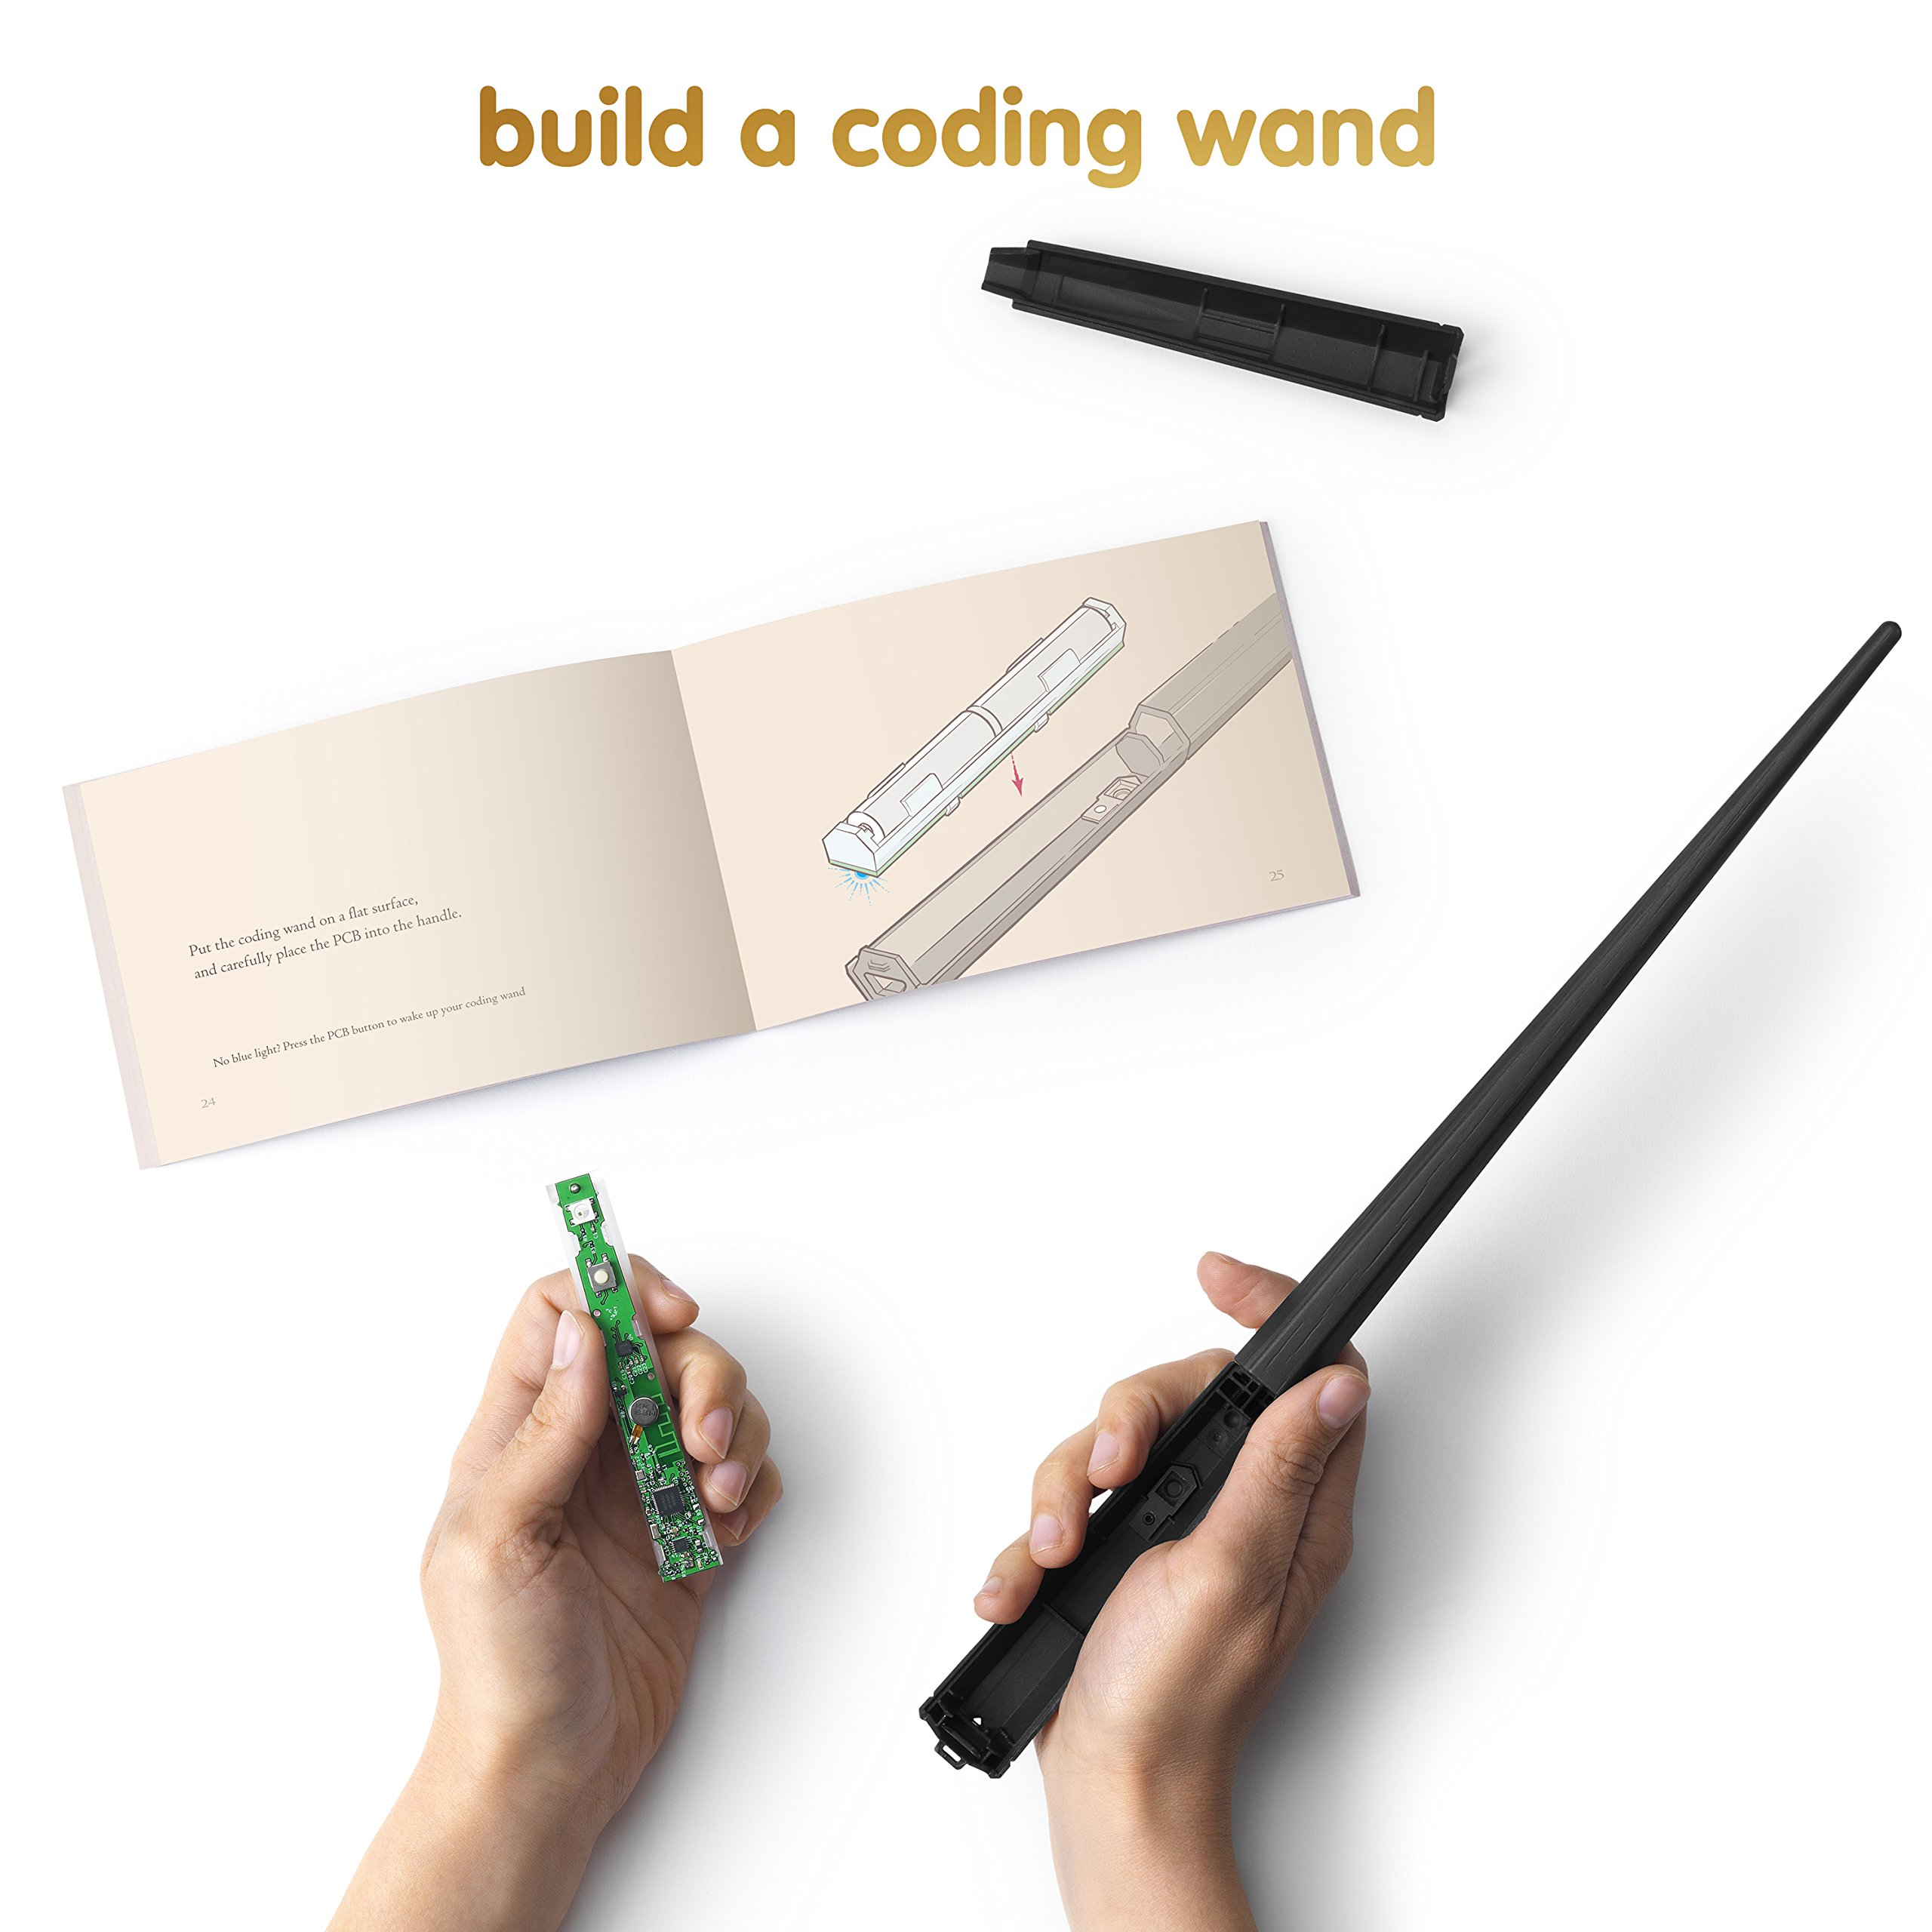 Kano Harry Potter Coding Kit – Build a Wand. Learn To Code. Make Magic. by Kano (Image #2)